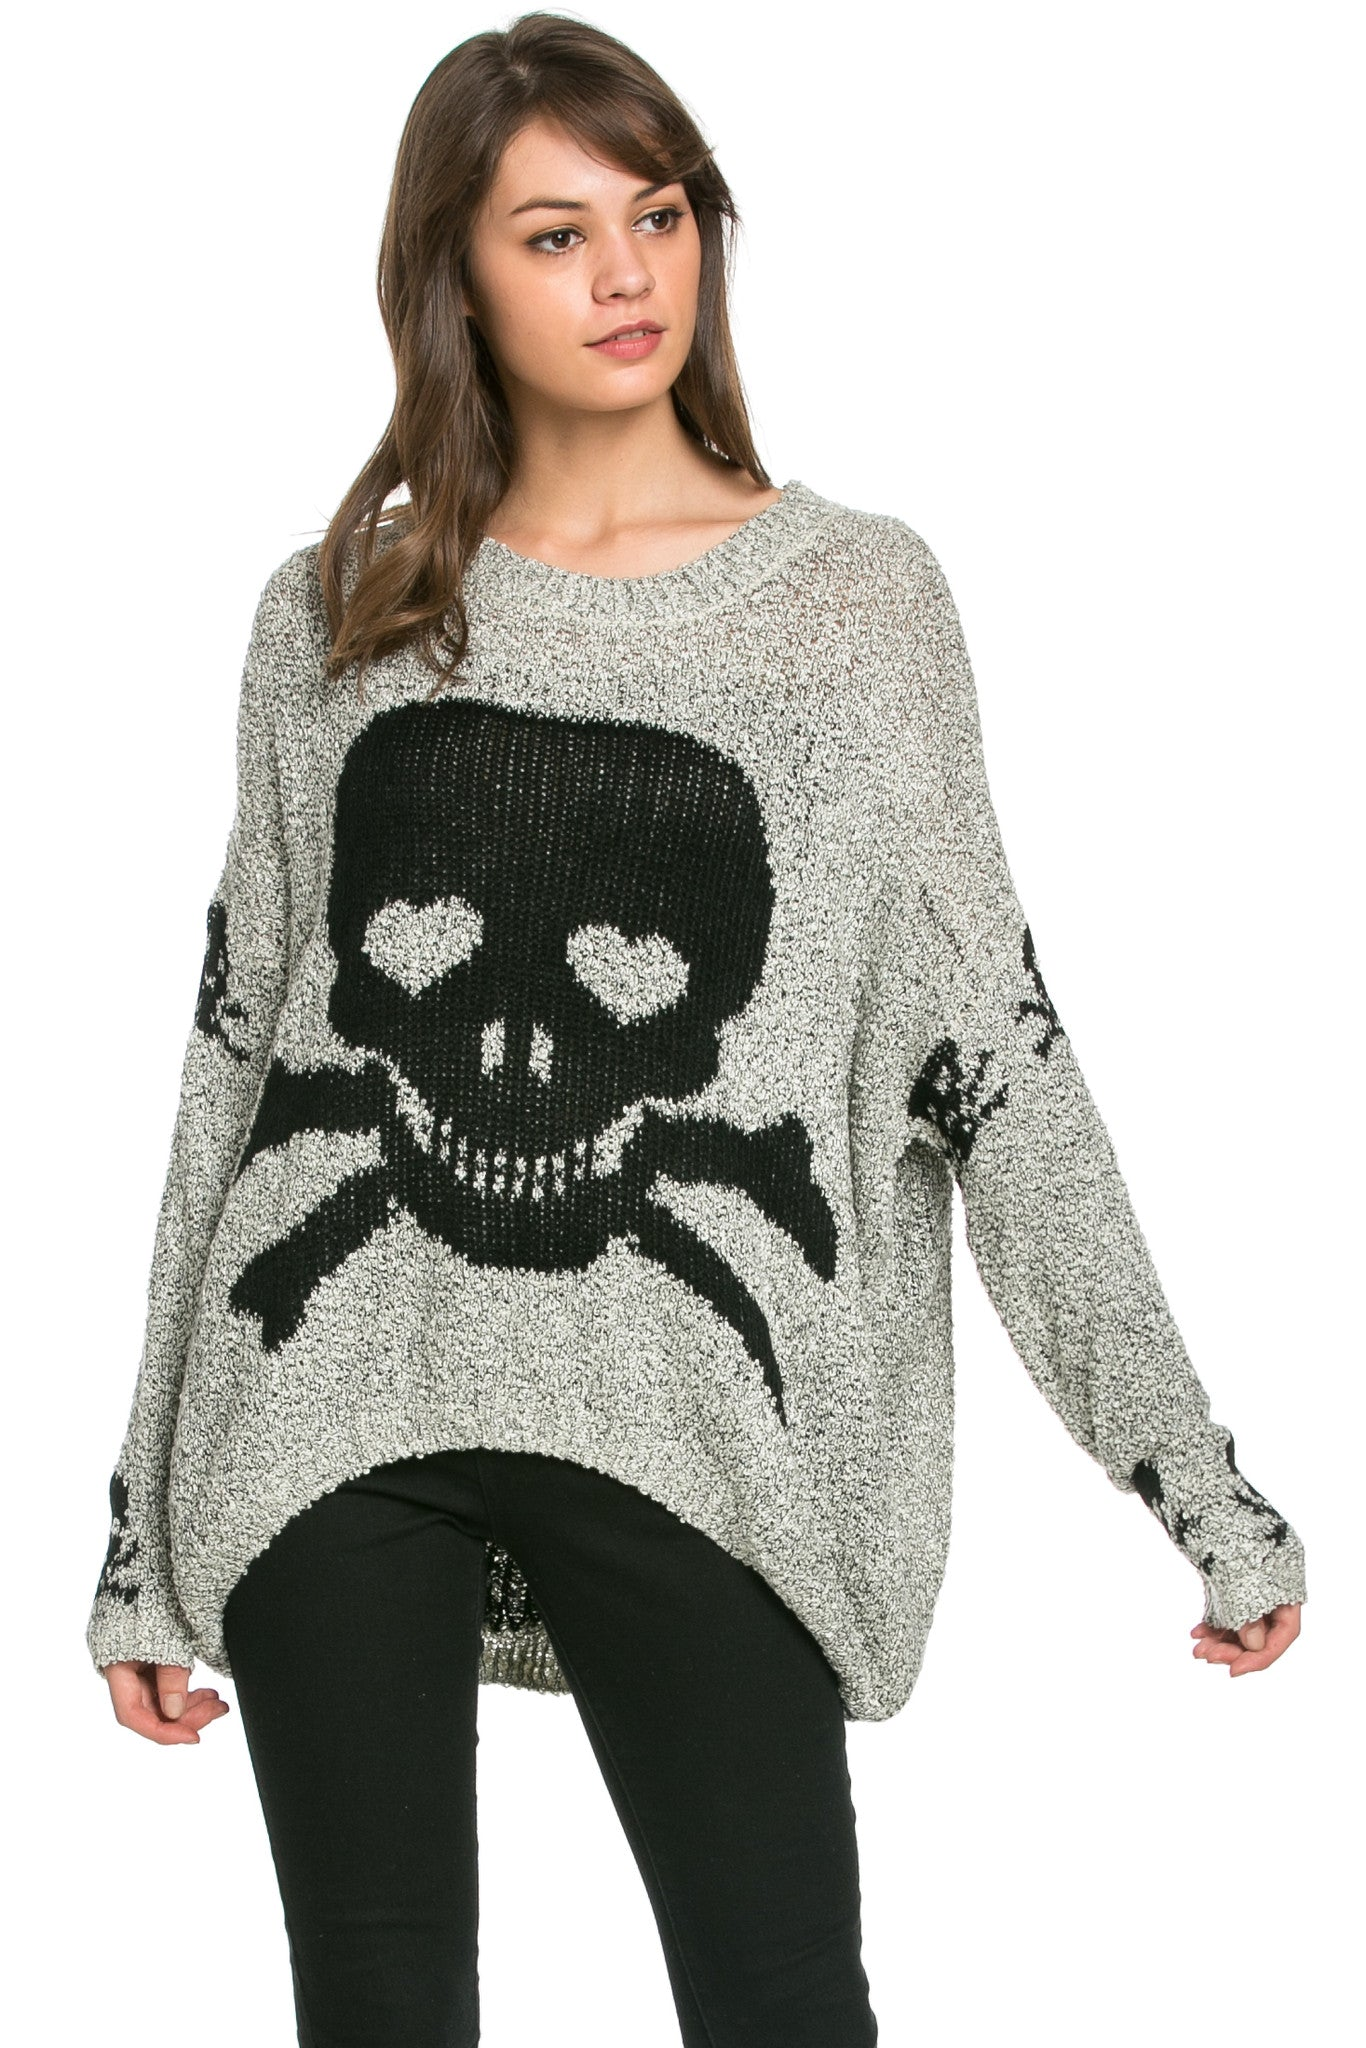 Skulls All Around Oversized Sweater Beige - Sweaters - My Yuccie - 1